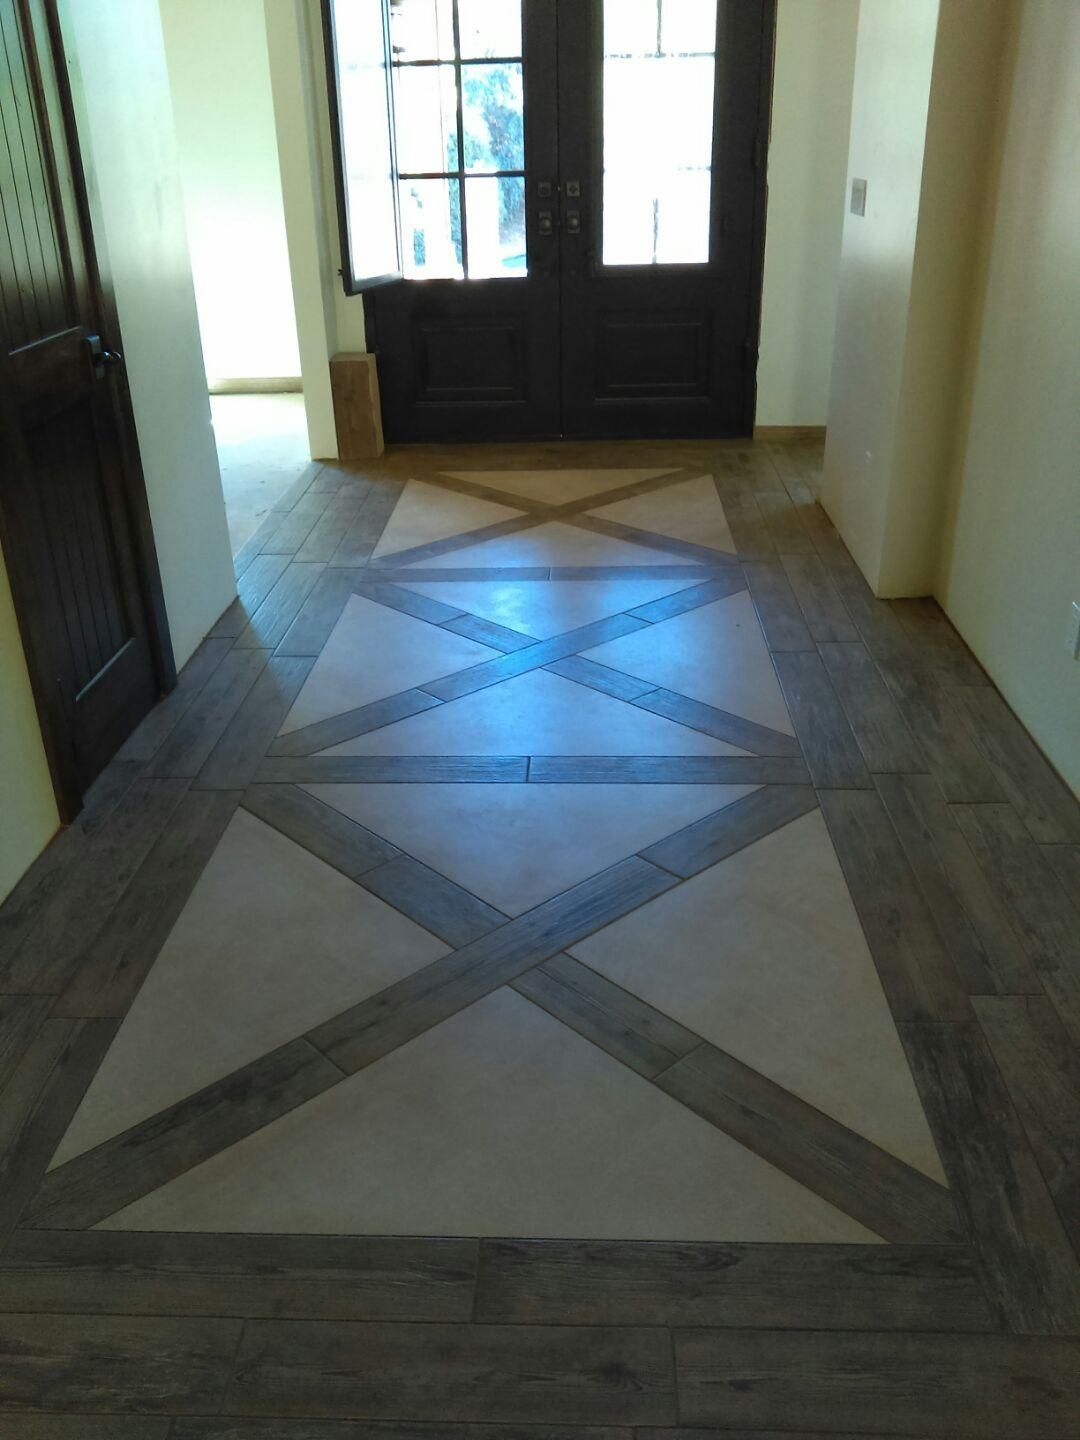 One of my favorite entry ways that we helped design this month here one of my favorite entry ways that we helped design this month here at empire tile wood look tile floorwood like dailygadgetfo Image collections